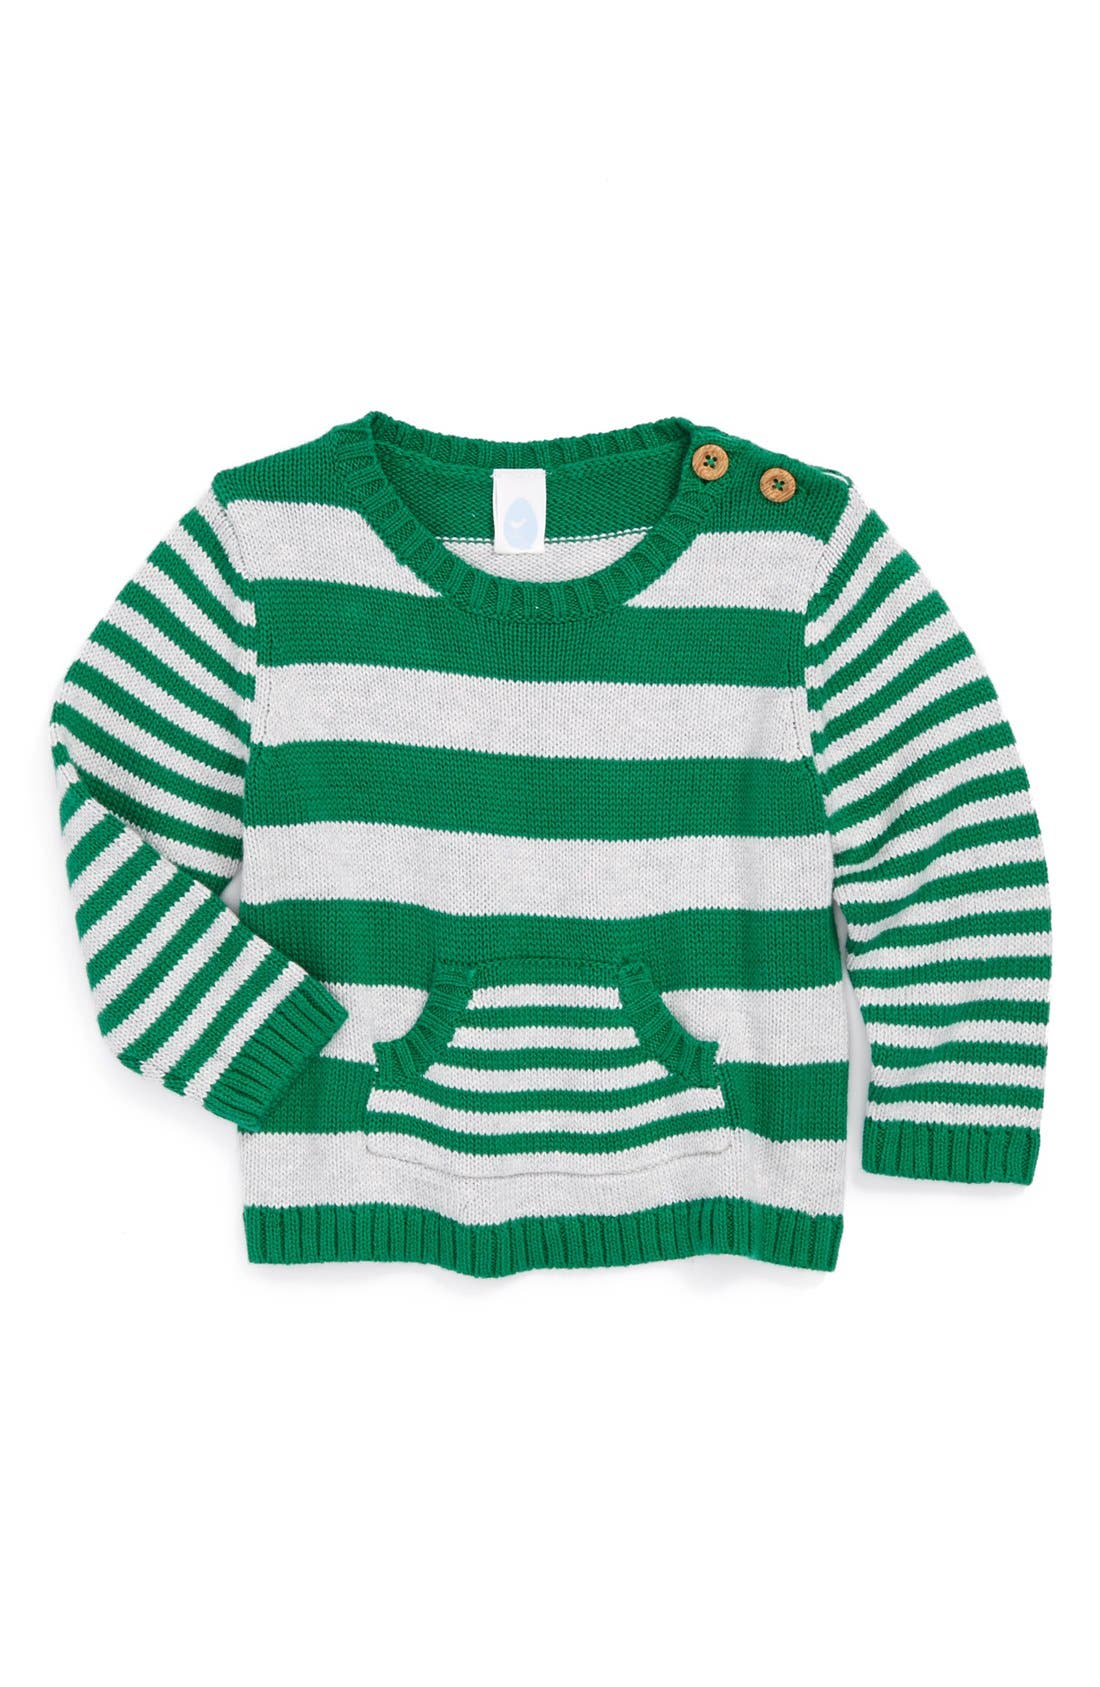 Alternate Image 1 Selected - Stem Baby Organic Cotton Sweater (Baby Boys)